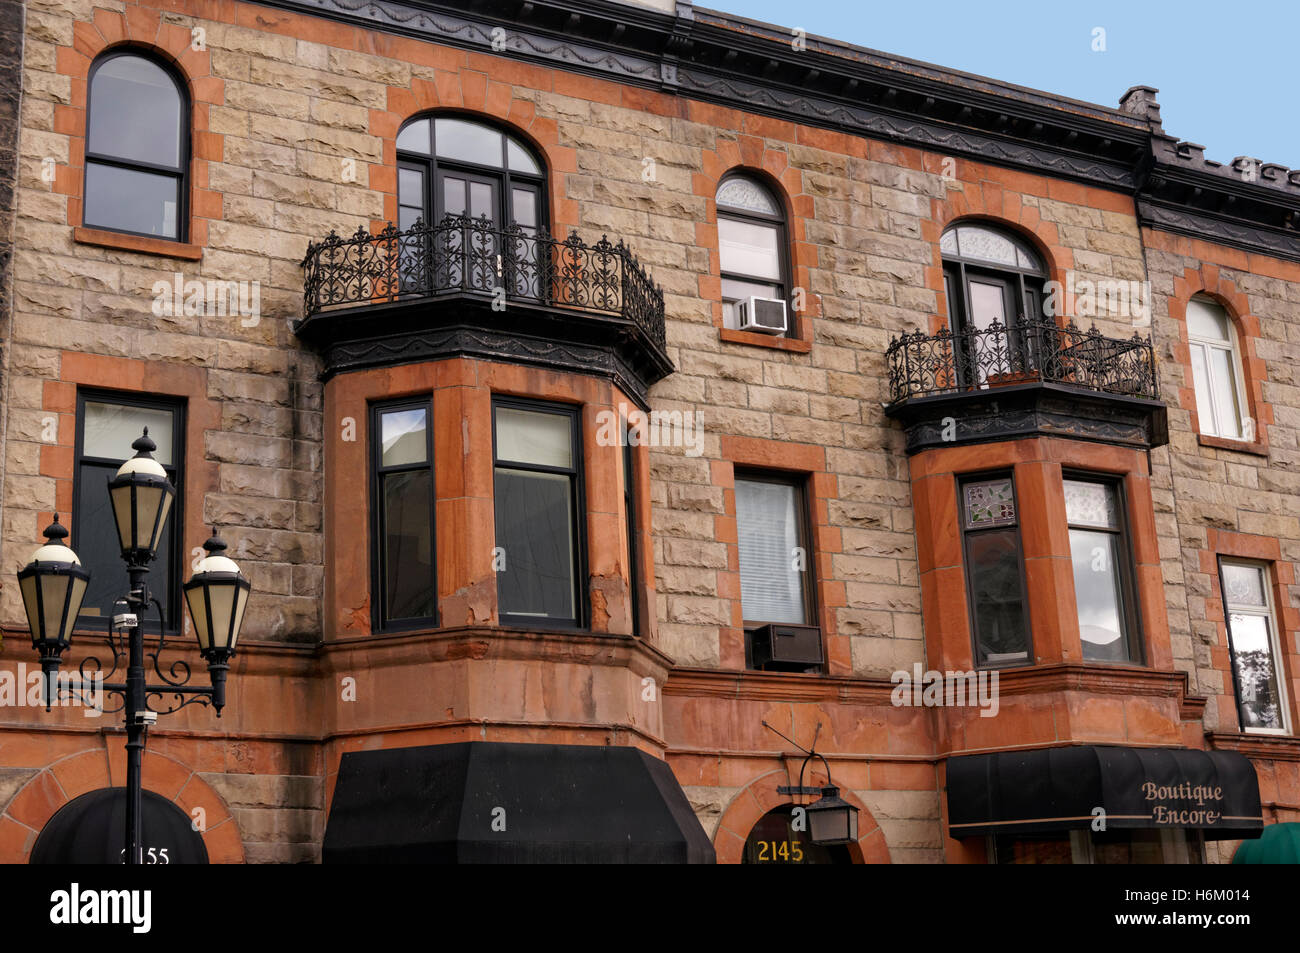 old-stone-buildings-on-crescent-street-i